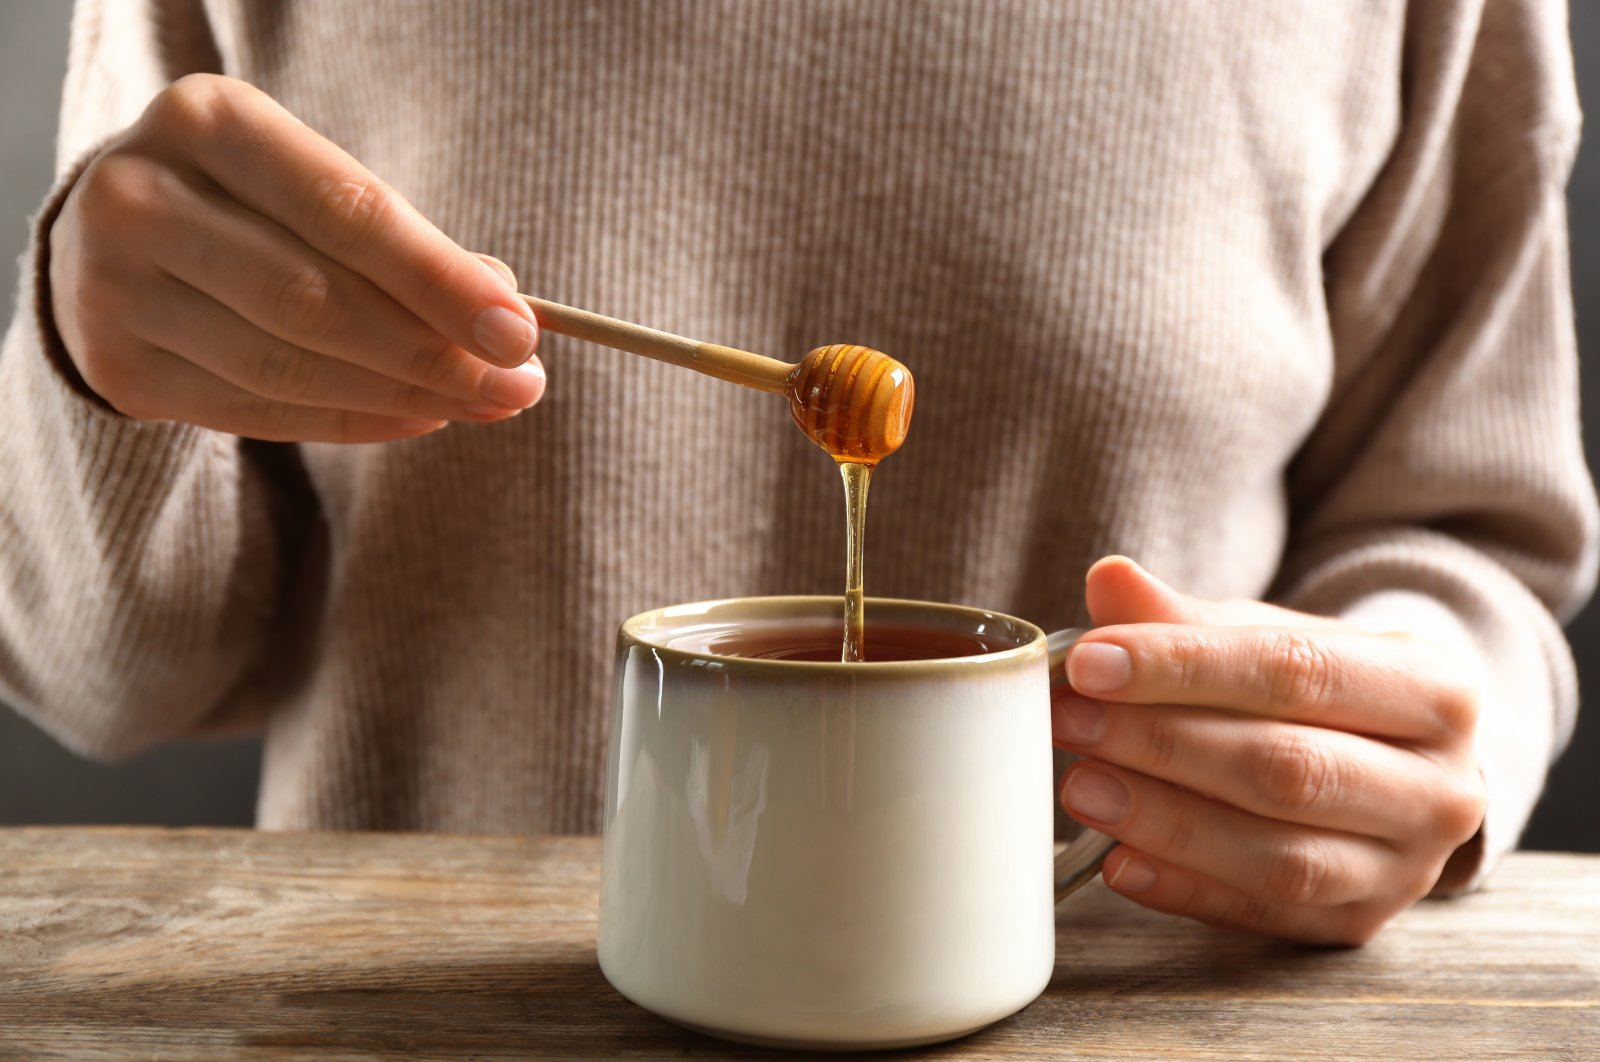 To make the honey liquid again, give it a water bath or put it in the oven. (Shutterstock Photo)